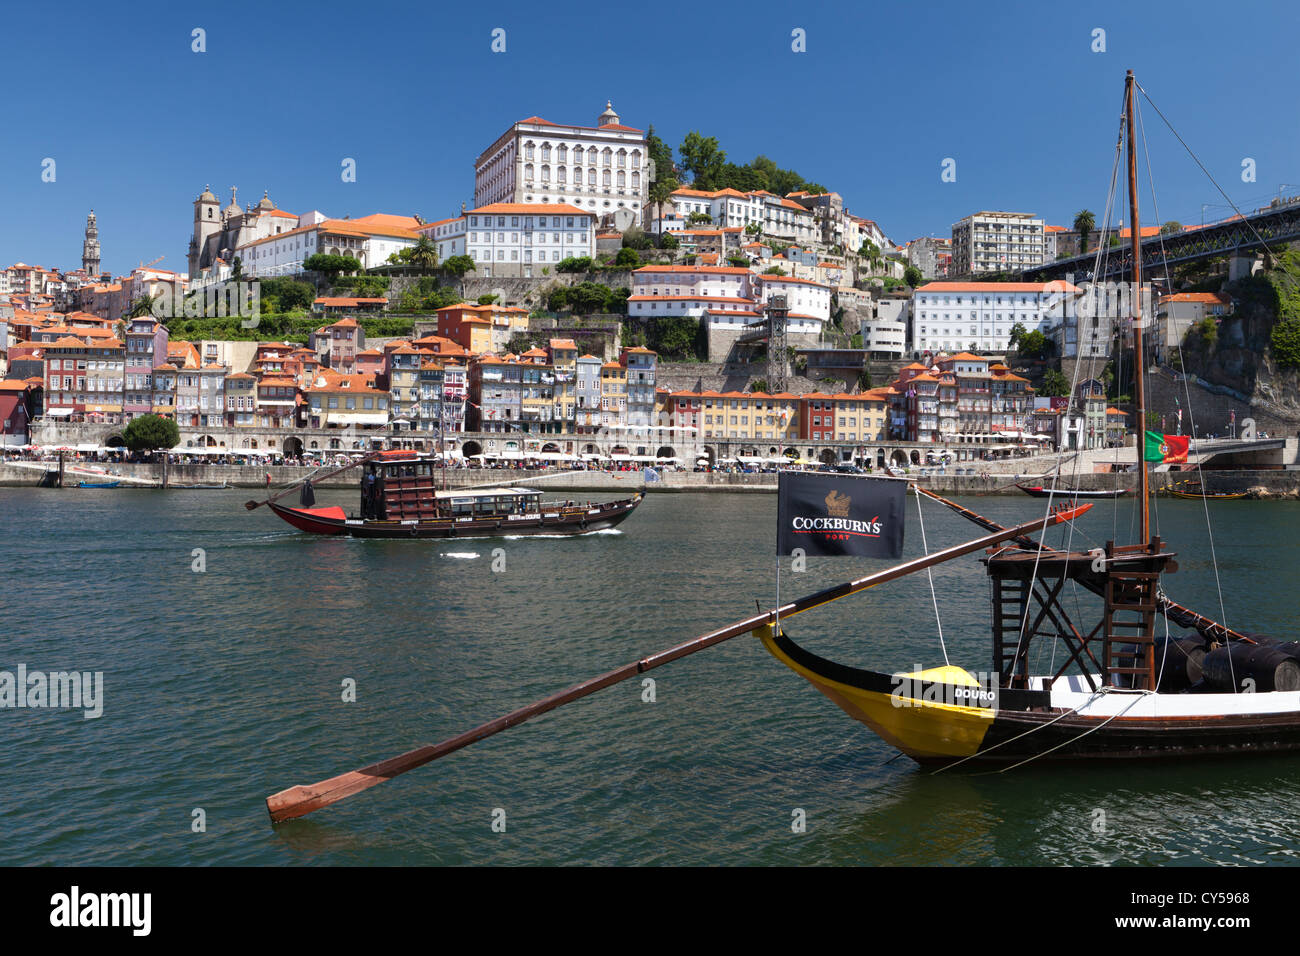 The Douro river, Port wine barges and the historic Ribeira district of Porto (Oporto), Portugal - Stock Image